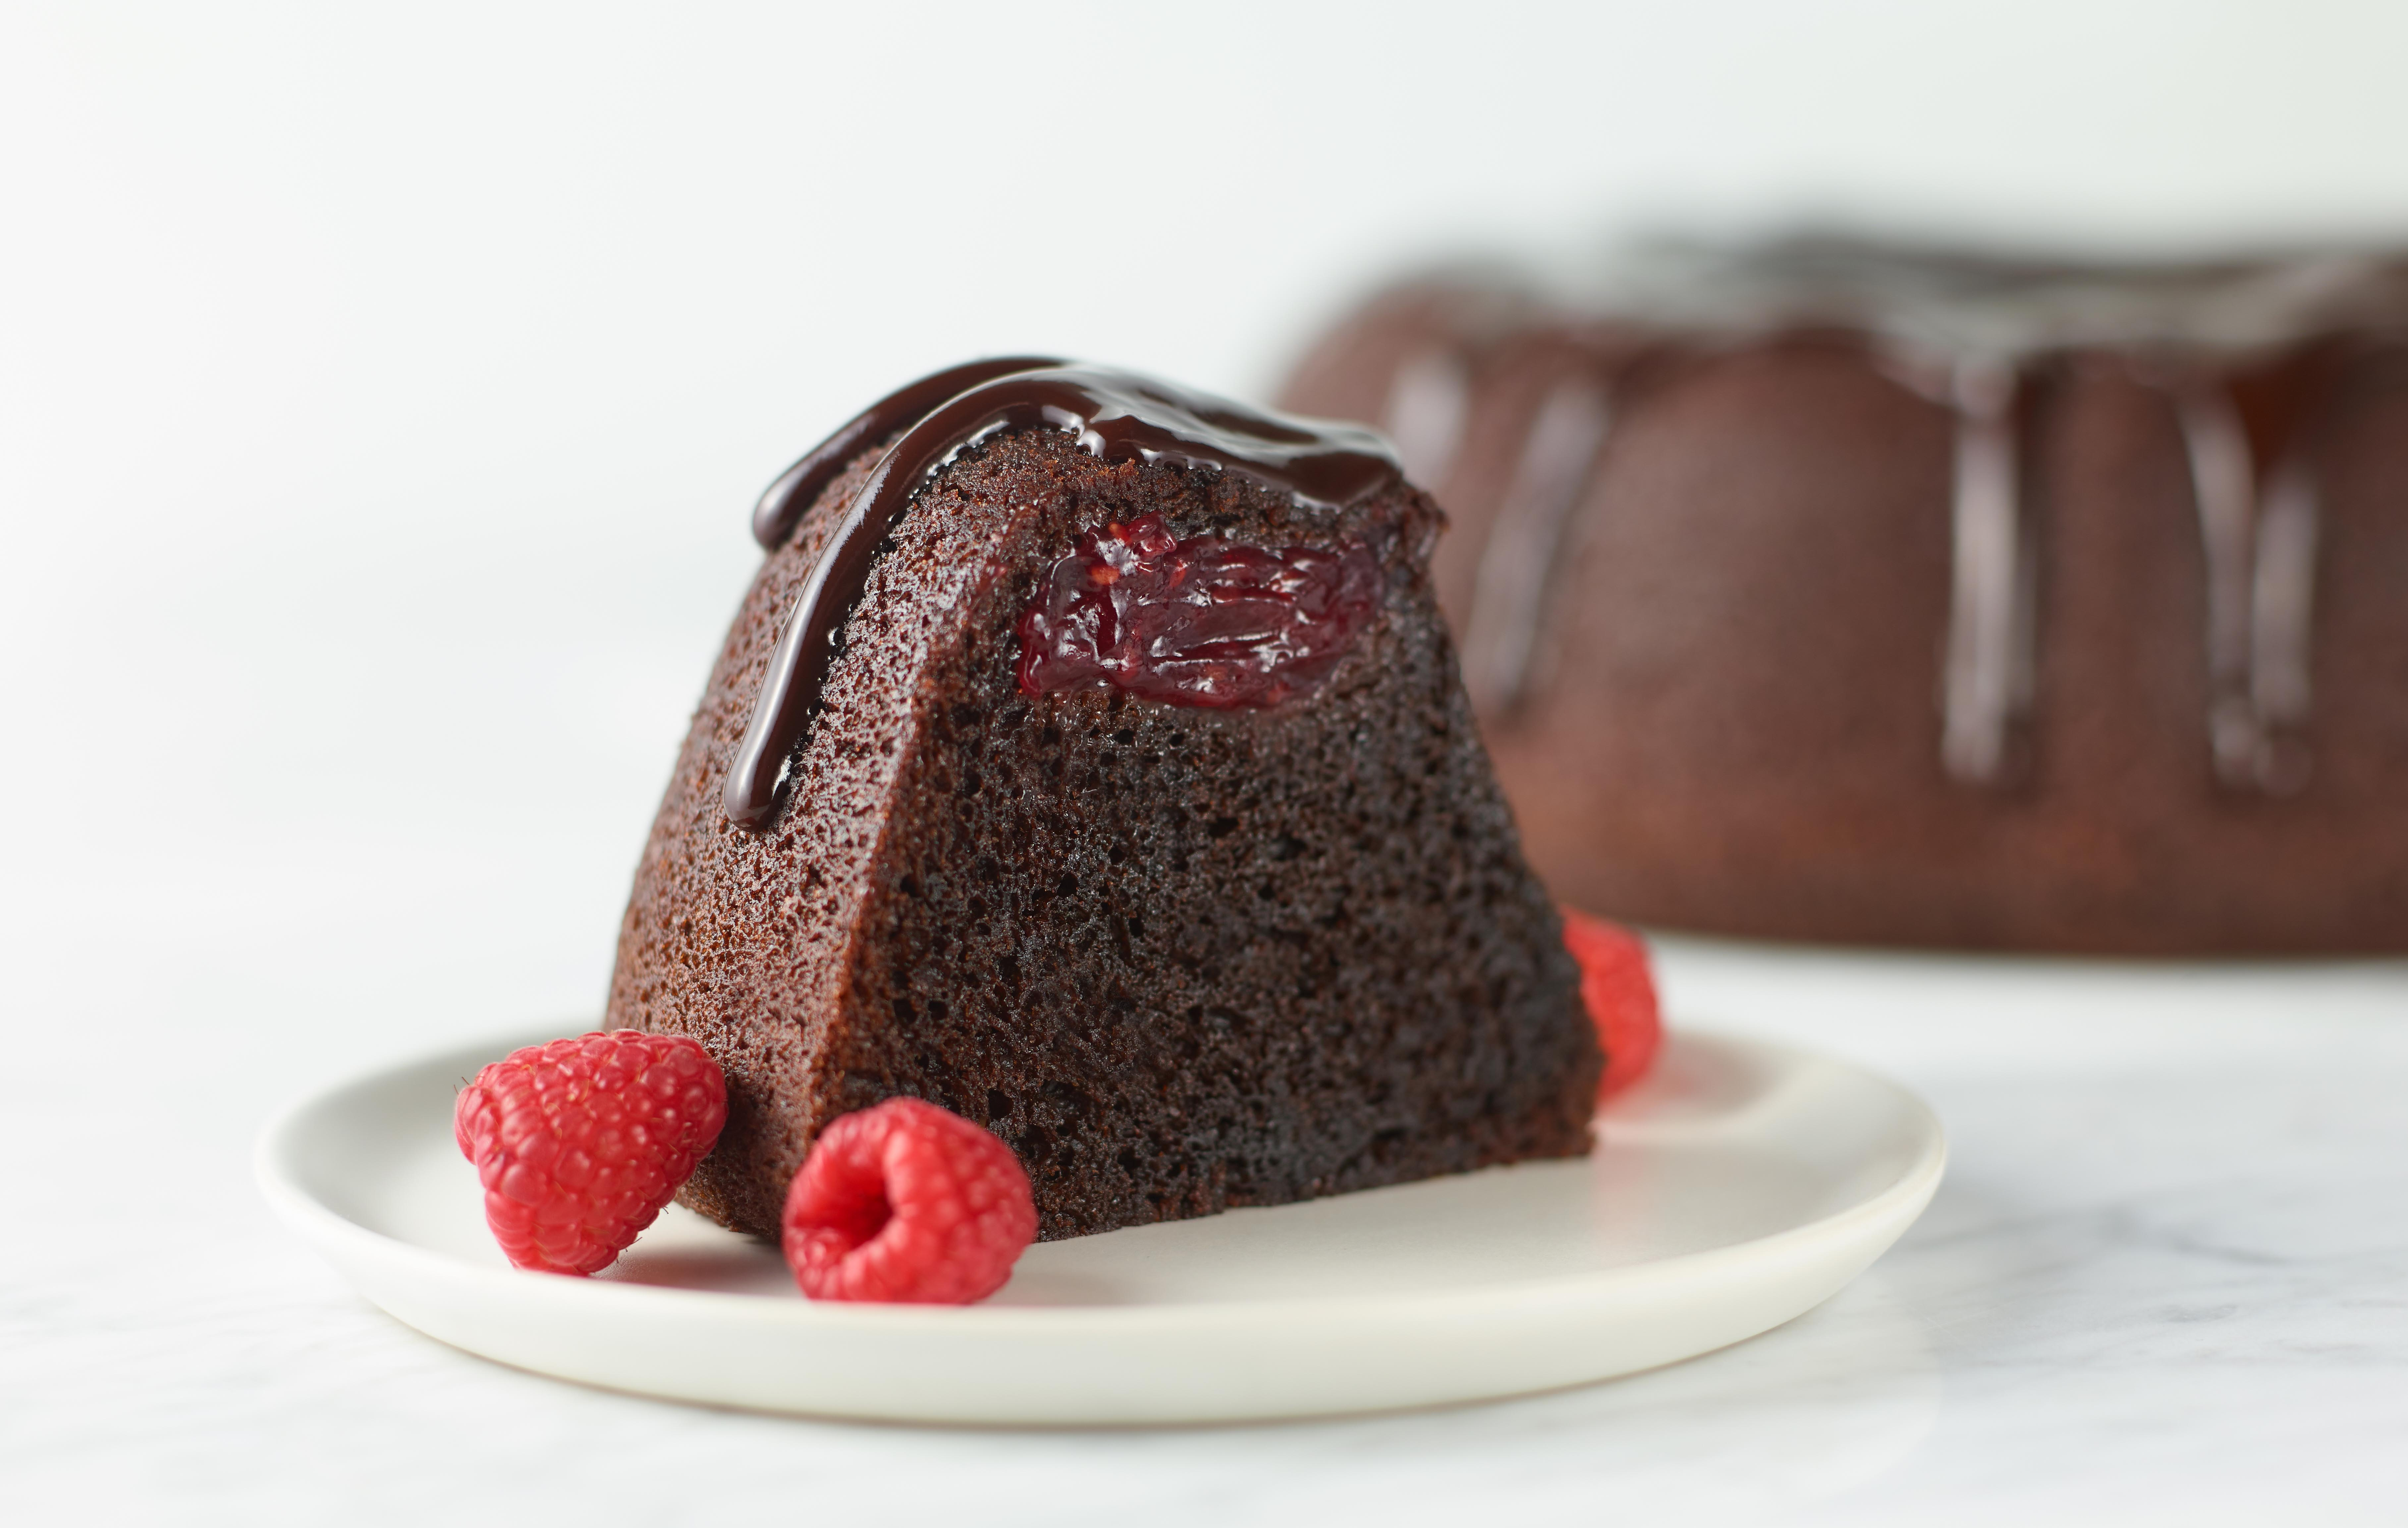 Dawn Balance Cleaner Ingredients Chocolate Creme Cake